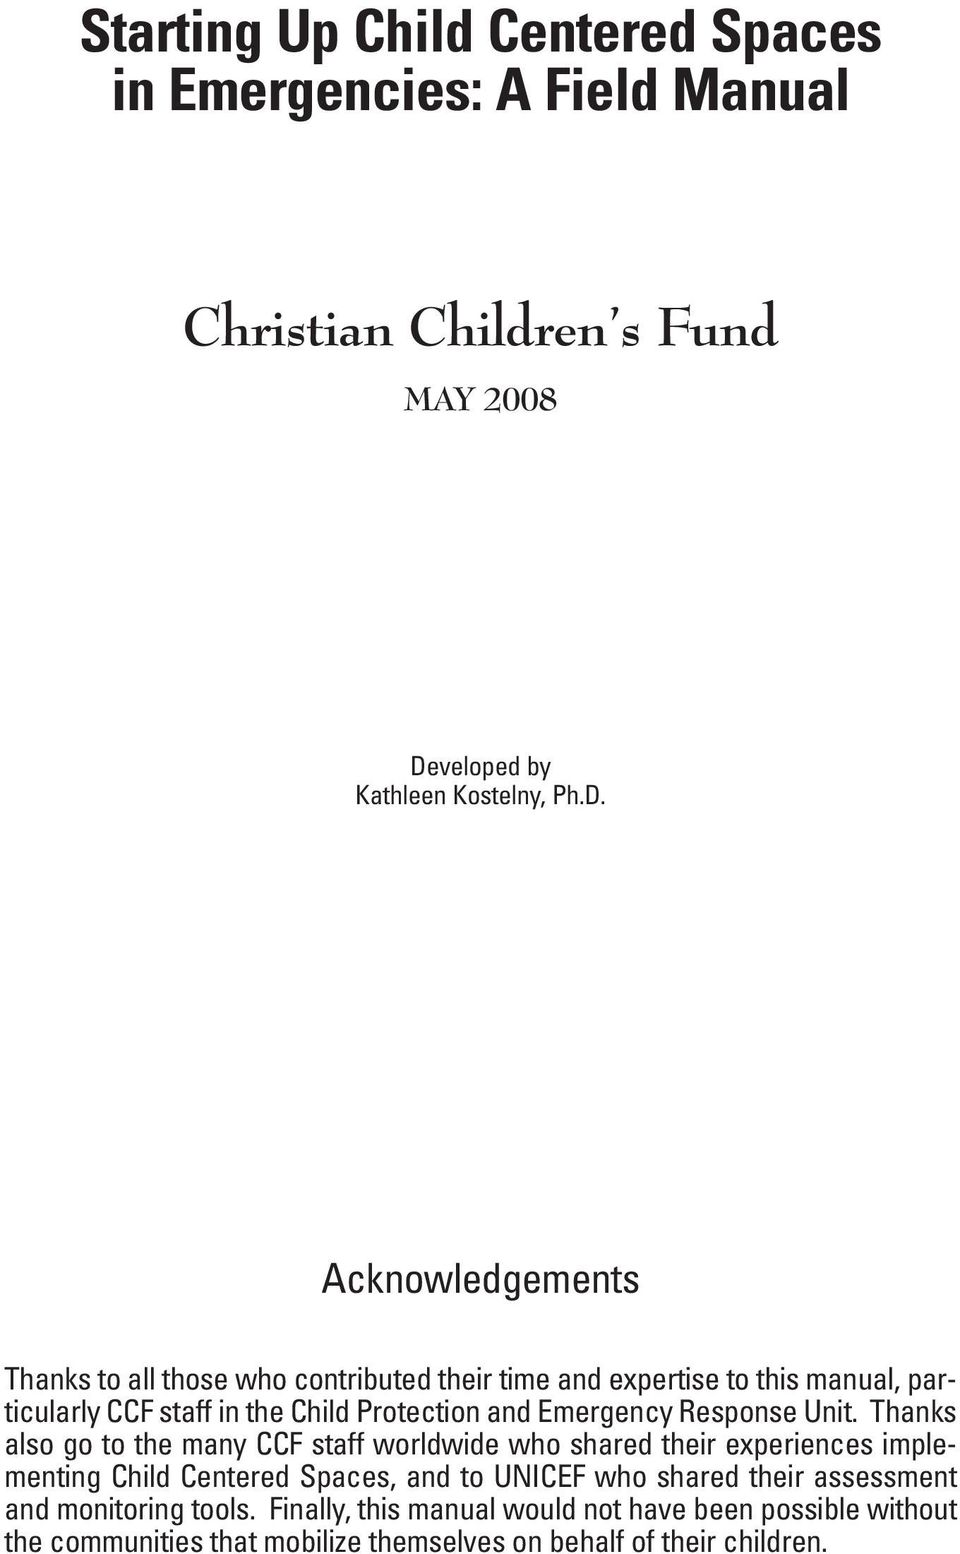 Acknowledgements Thanks to all those who contributed their time and expertise to this manual, particularly CCF staff in the Child Protection and